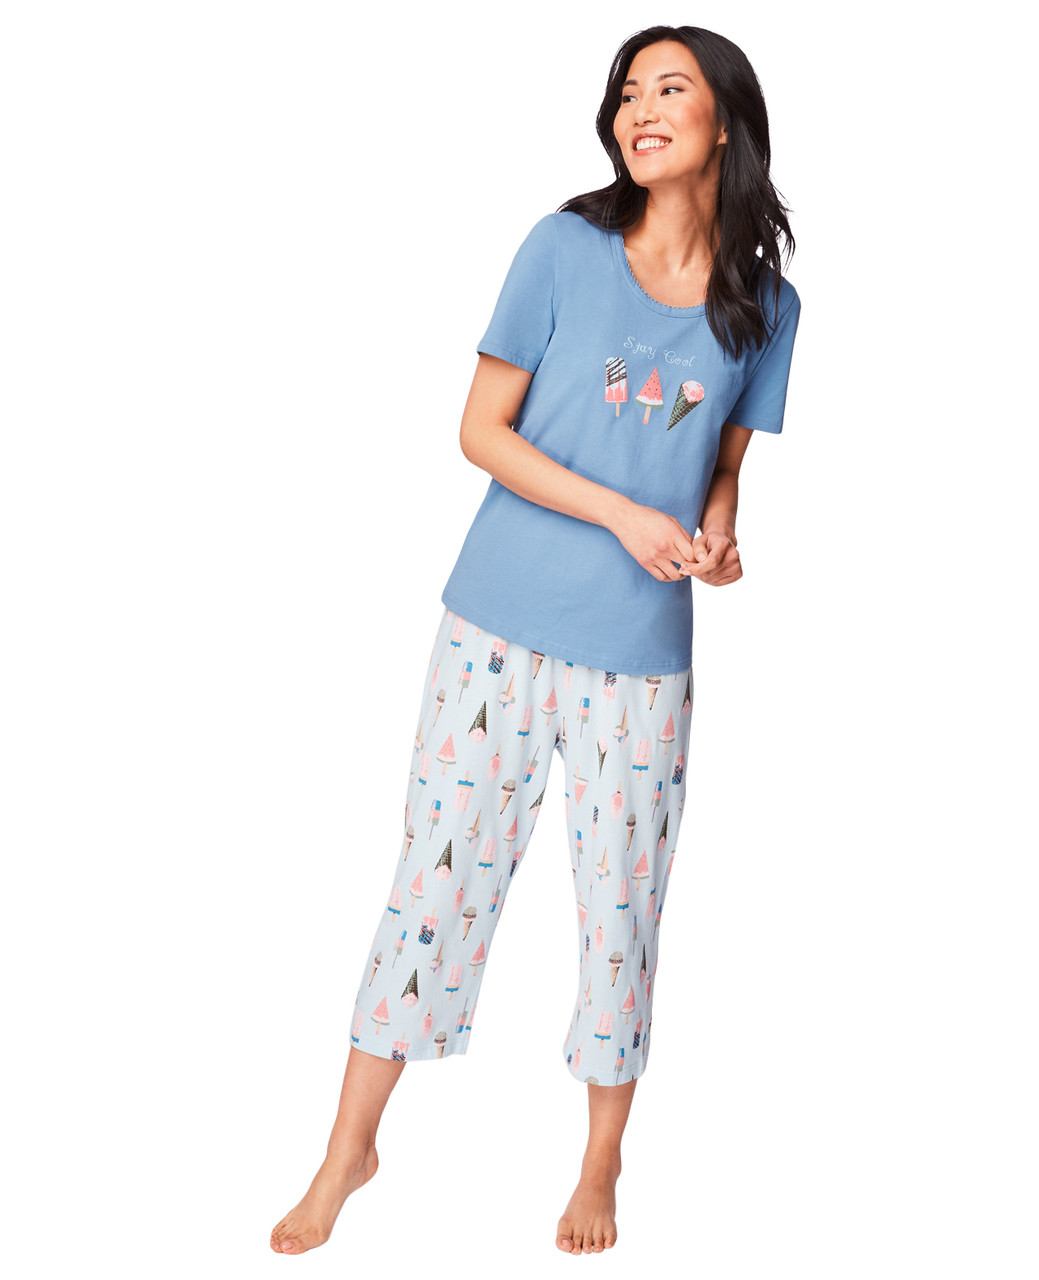 f4c7df8899c Women s Blue Ice Cream Print Pajama Set